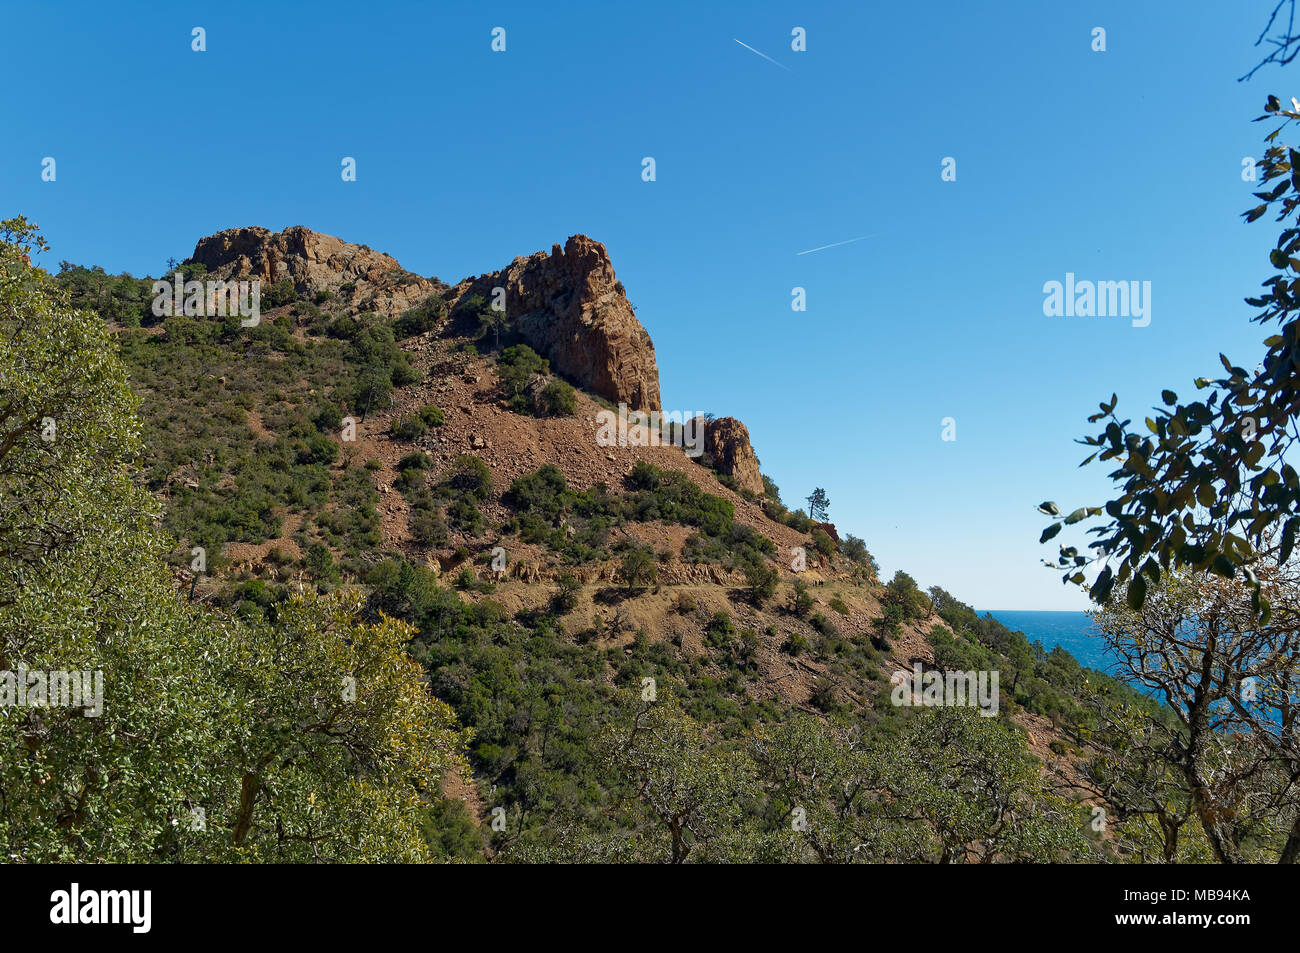 The Esterel Massif is a Mediterranean coastal mountain range in the departments of Var and Alpes-Maritimes in south-east France. Ideal for trekking. - Stock Image